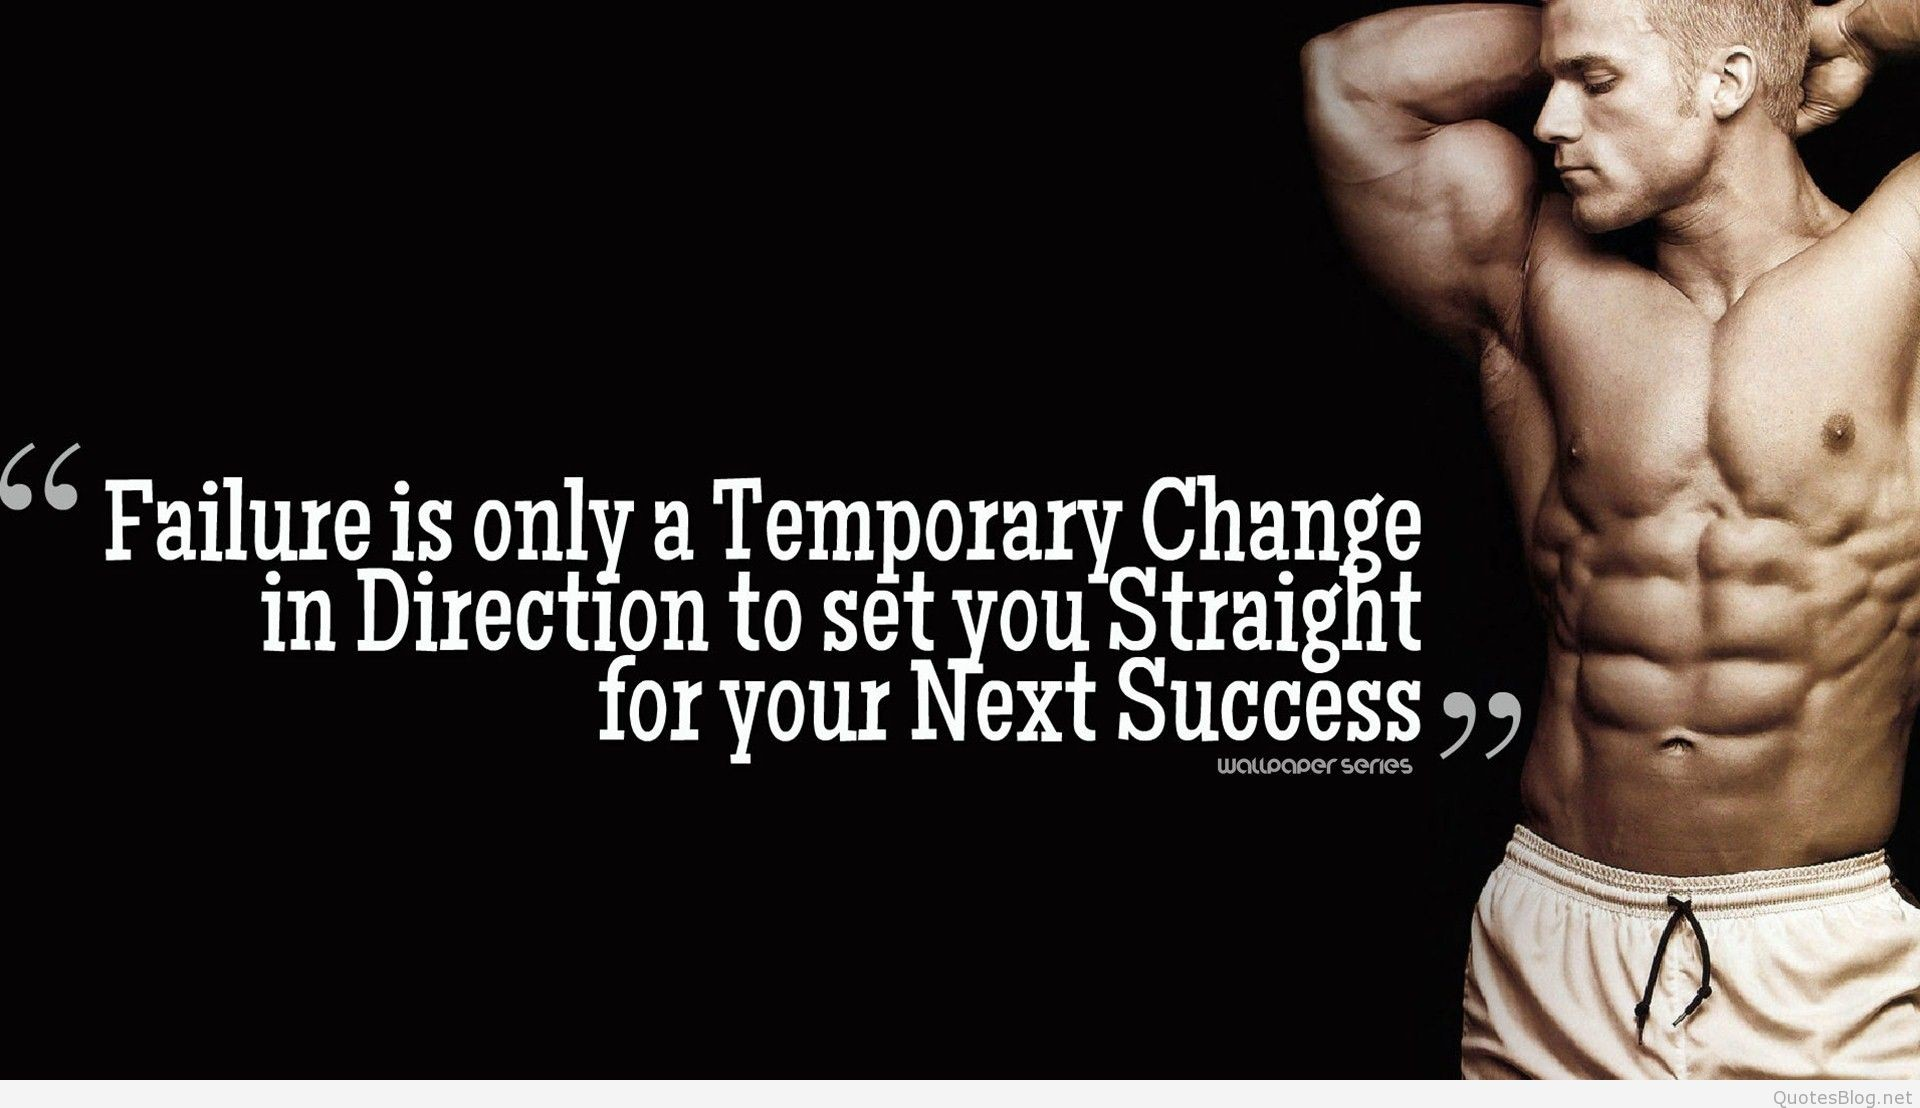 Success – Gym Quotes HD Wallpaper